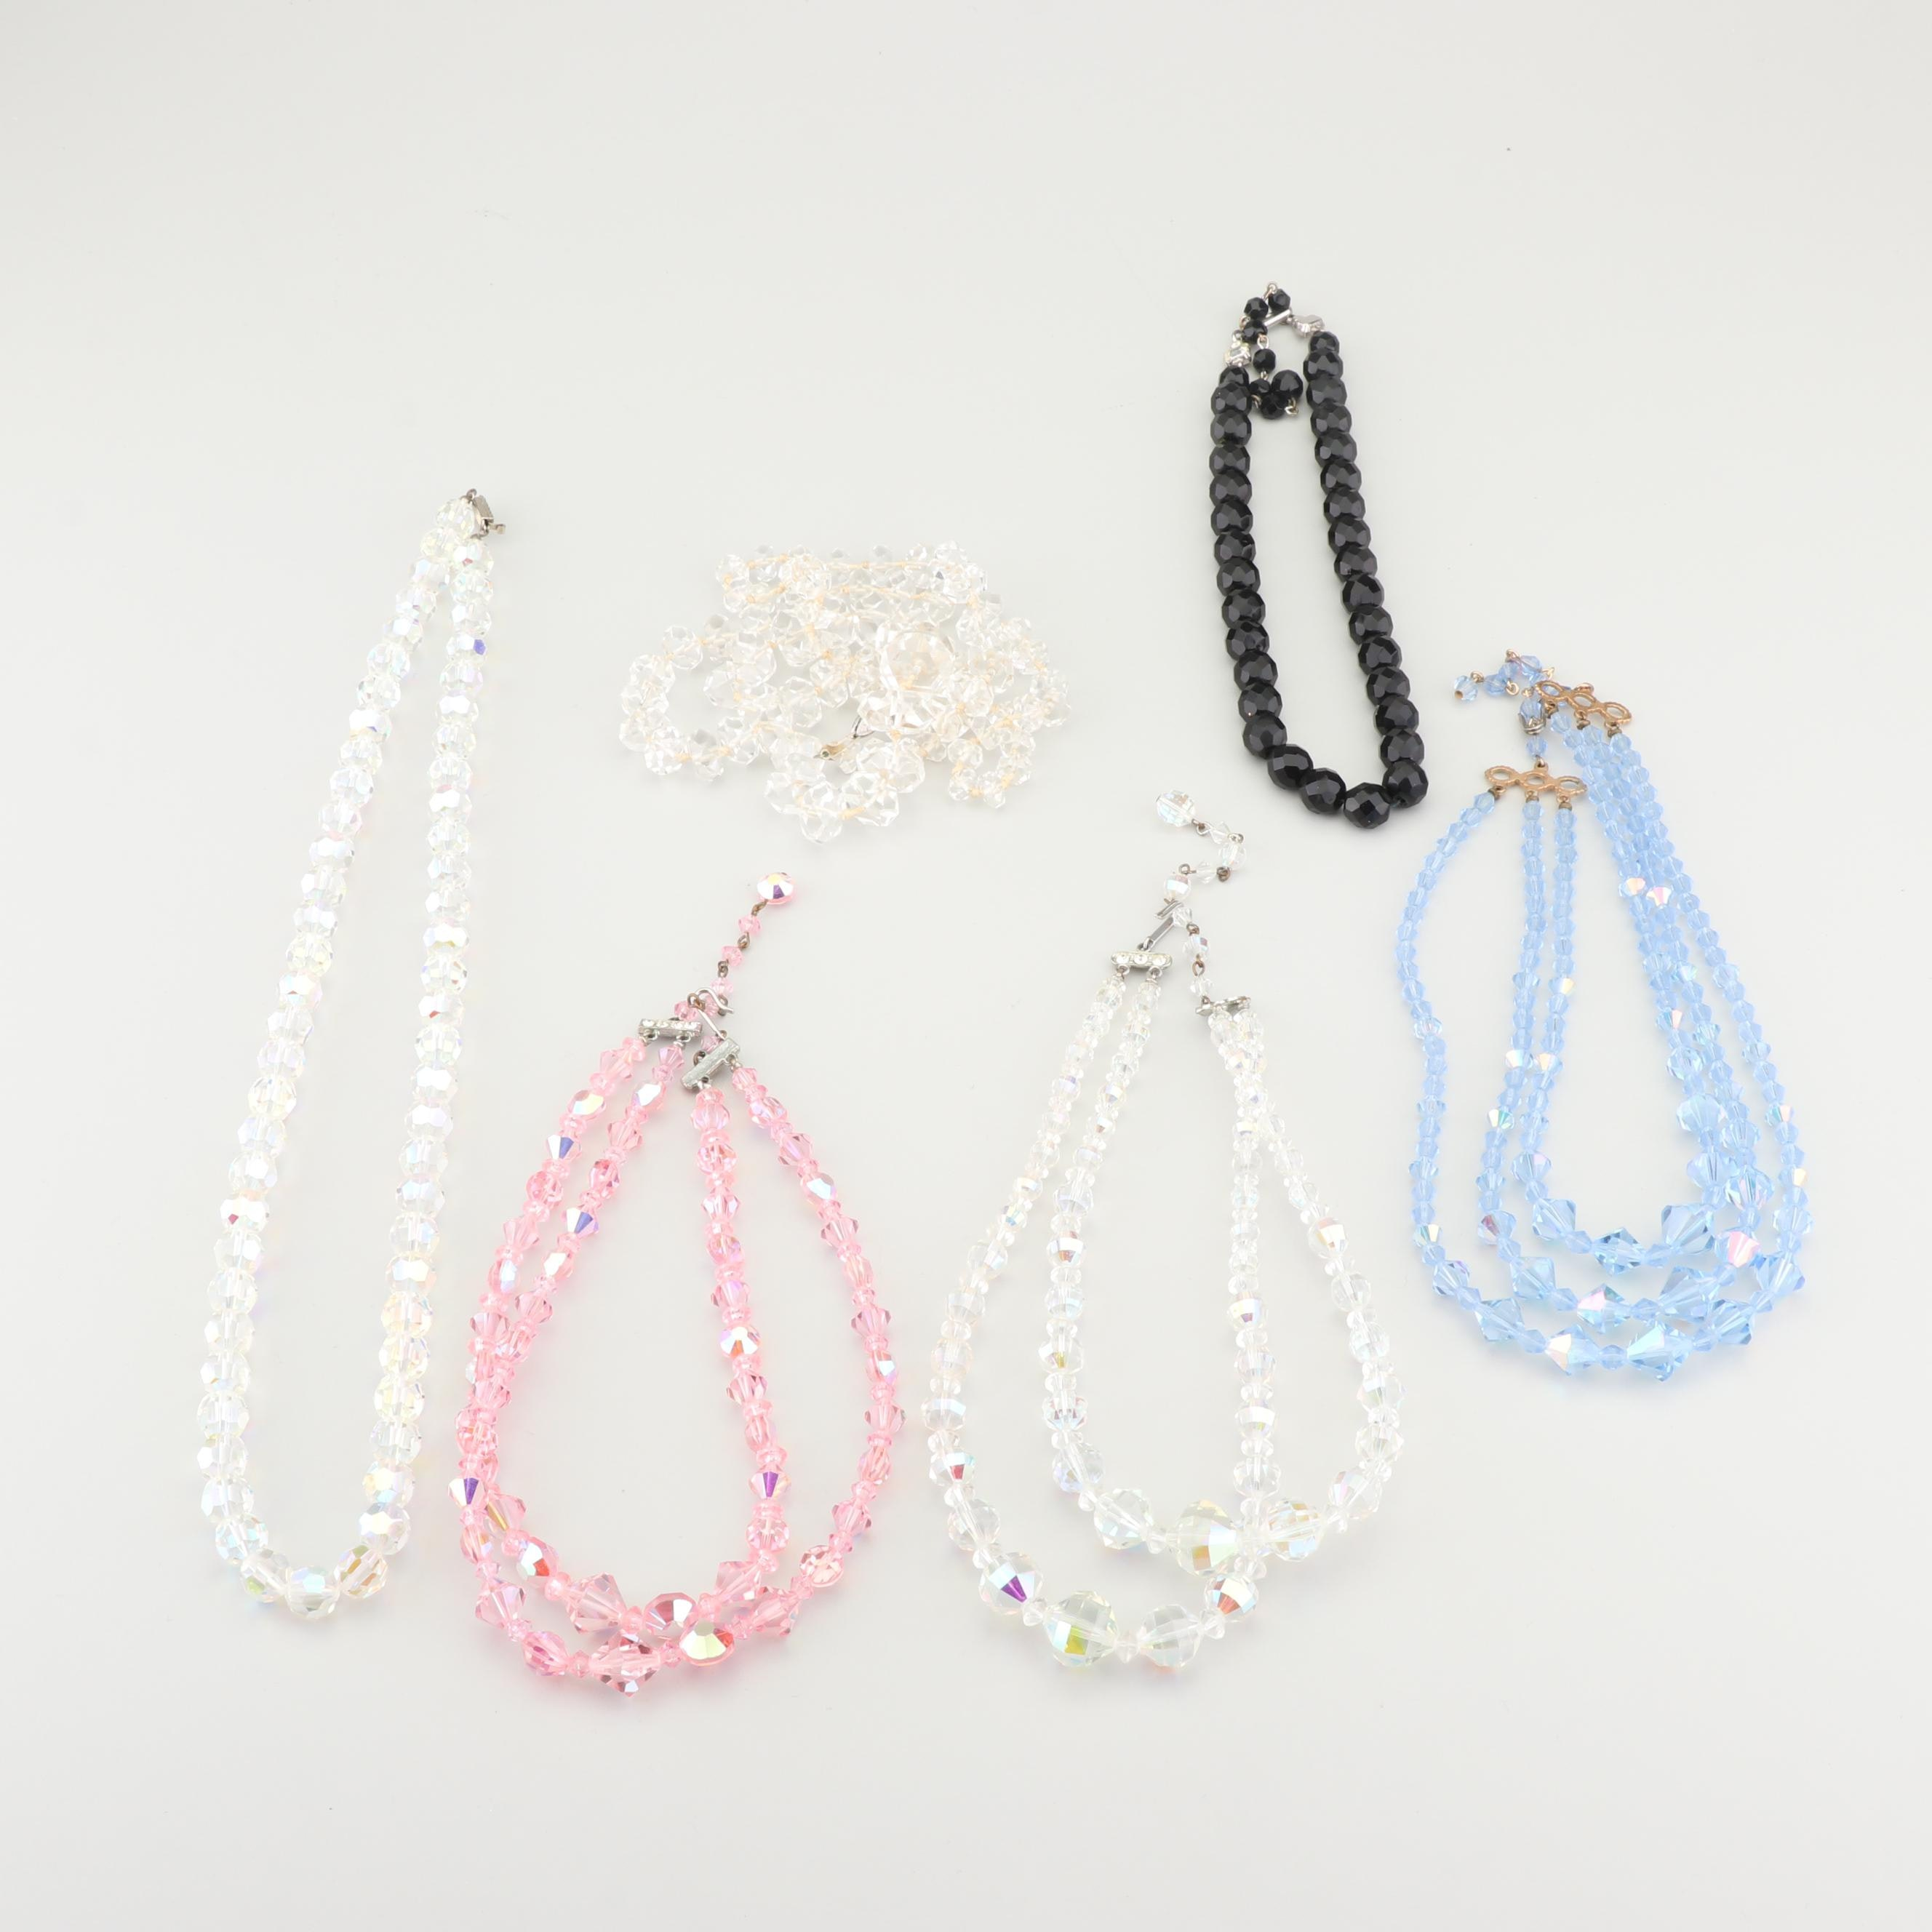 Faceted Crystal Bead Necklaces